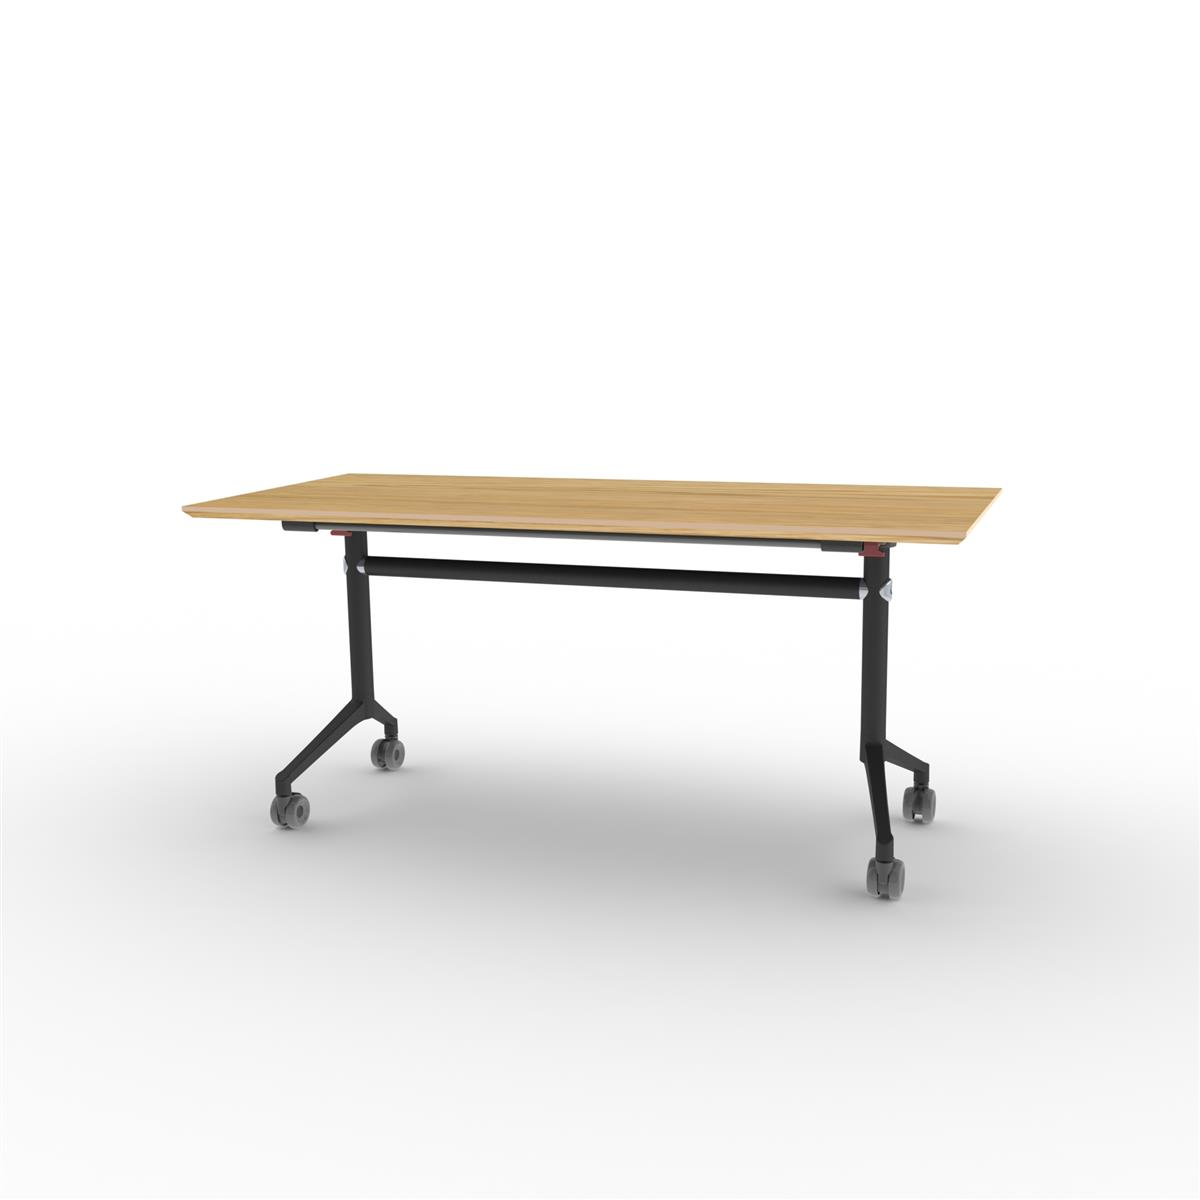 X1 Seamless Folding Table 160x70 cm med eikefinér og sort understell